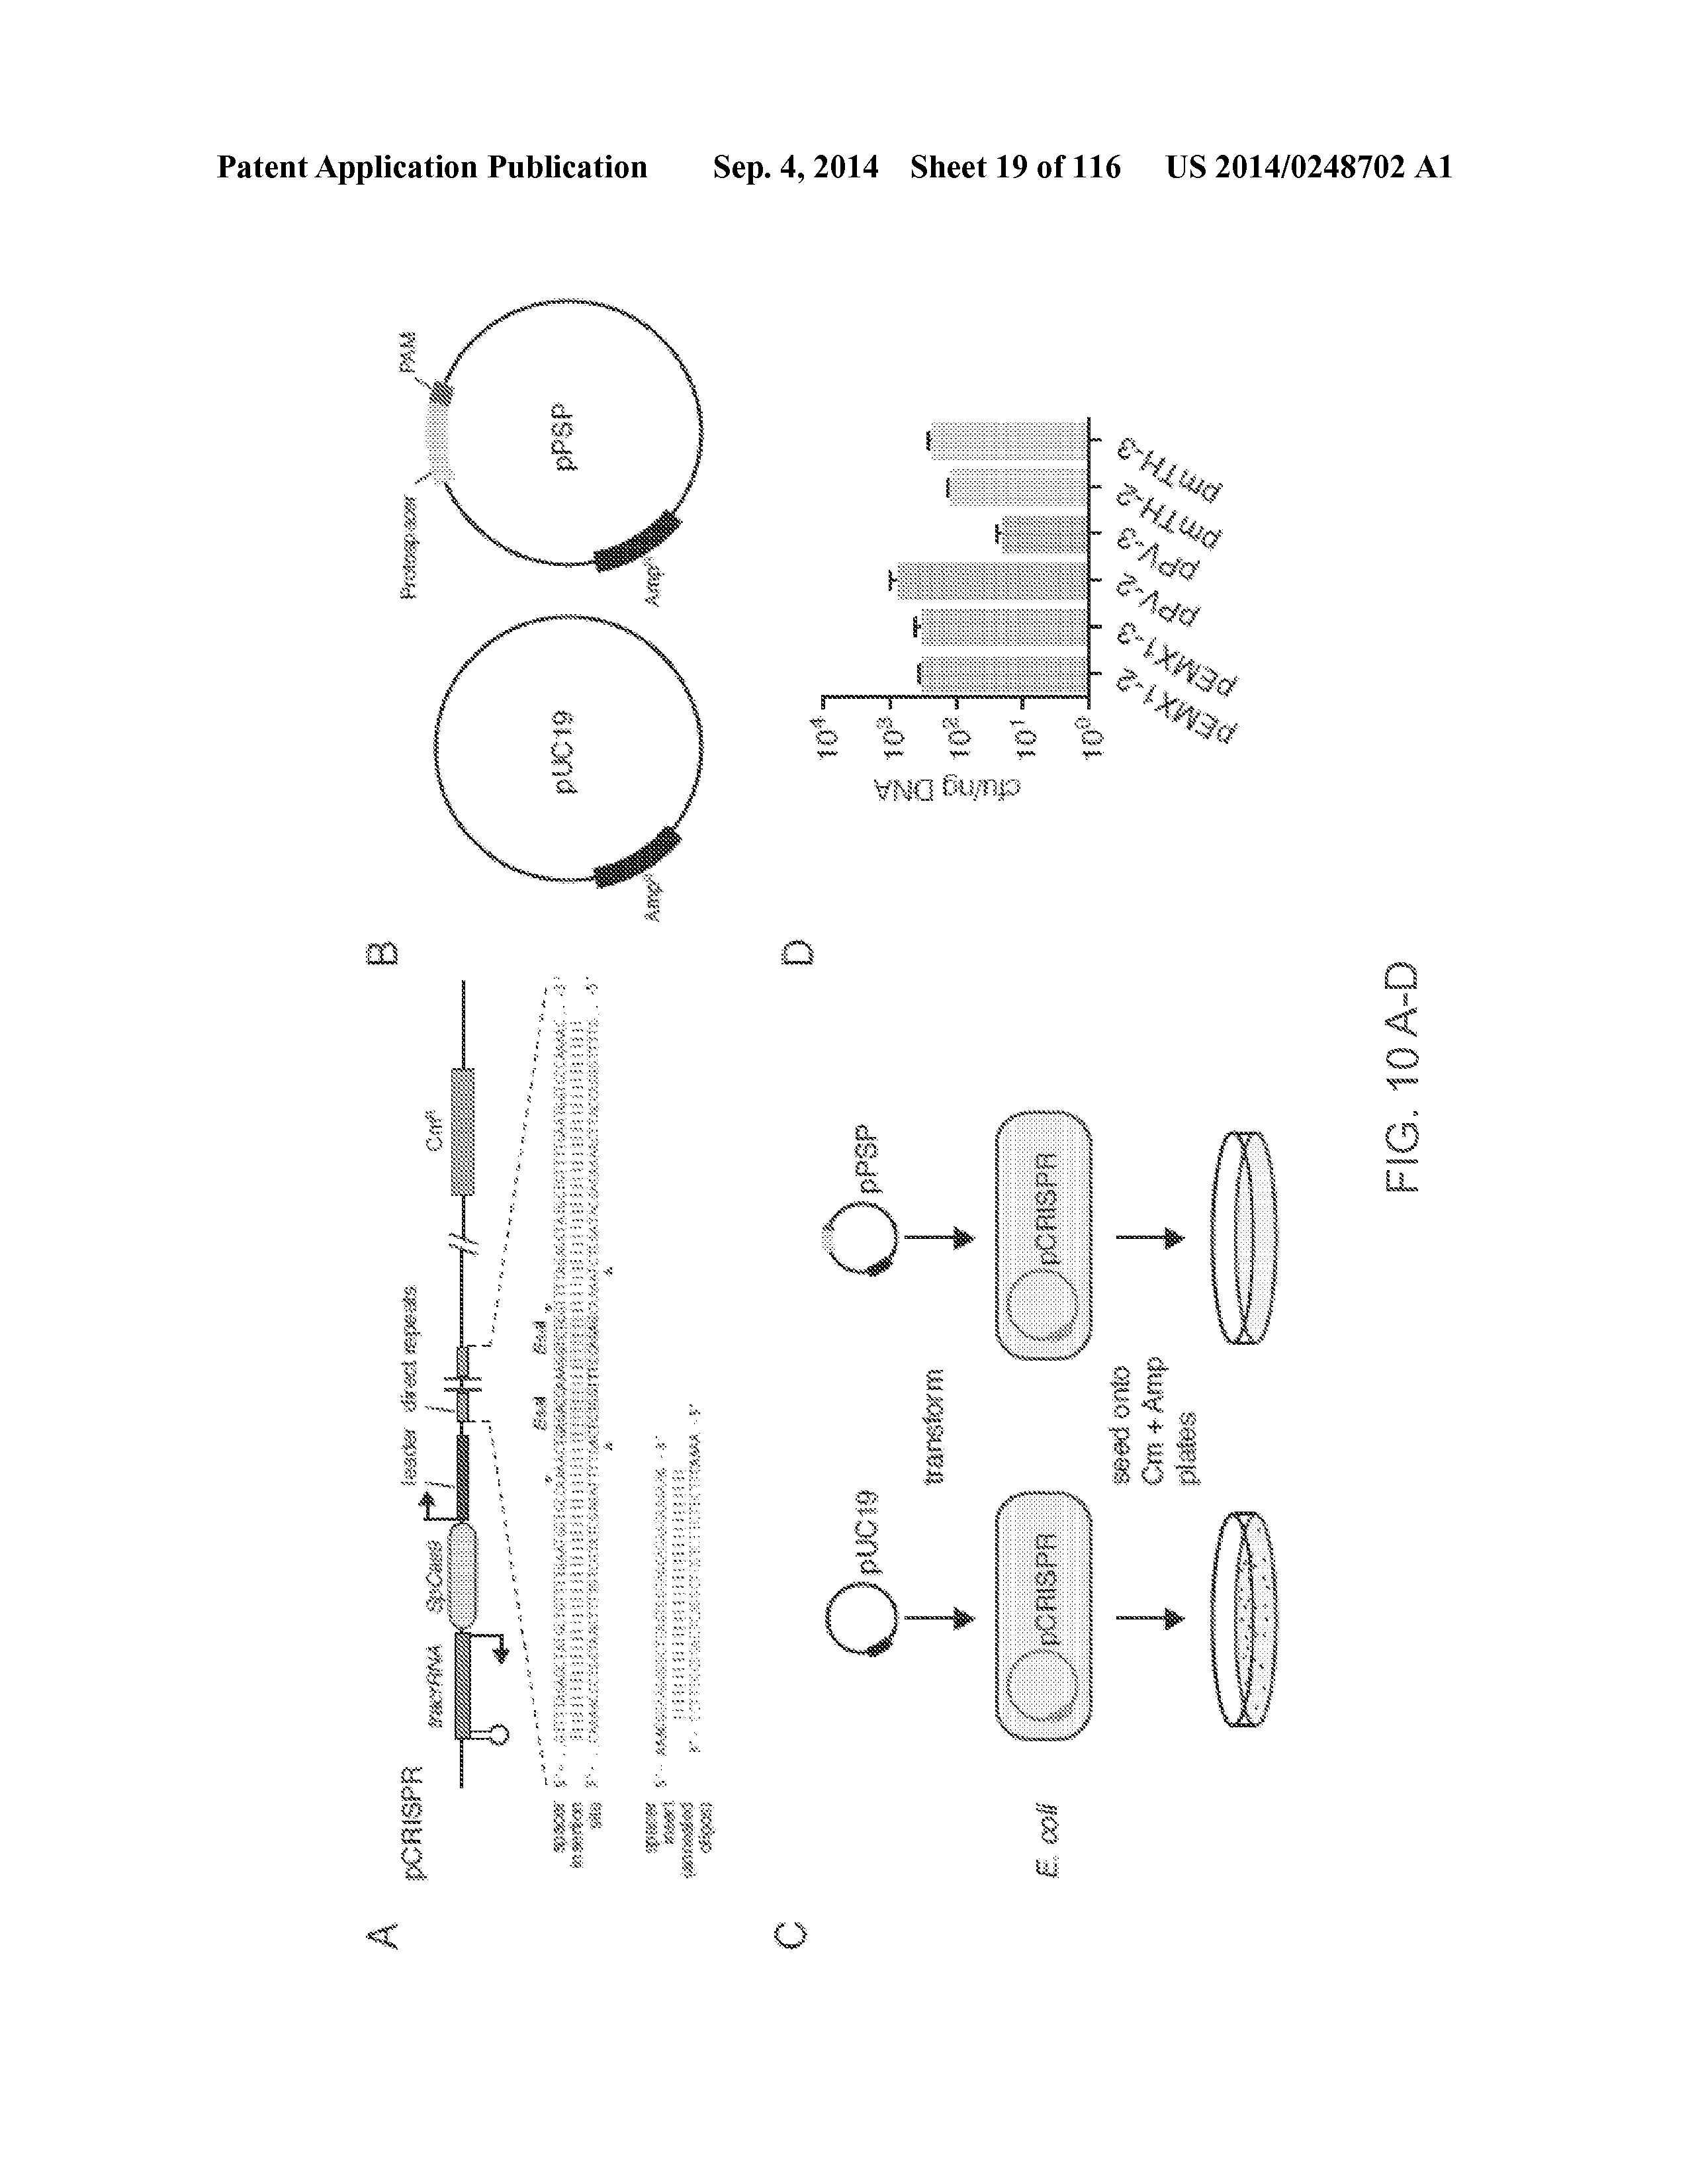 US 2014/0248702 A1 - Crispr-cas Nickase Systems, Methods And